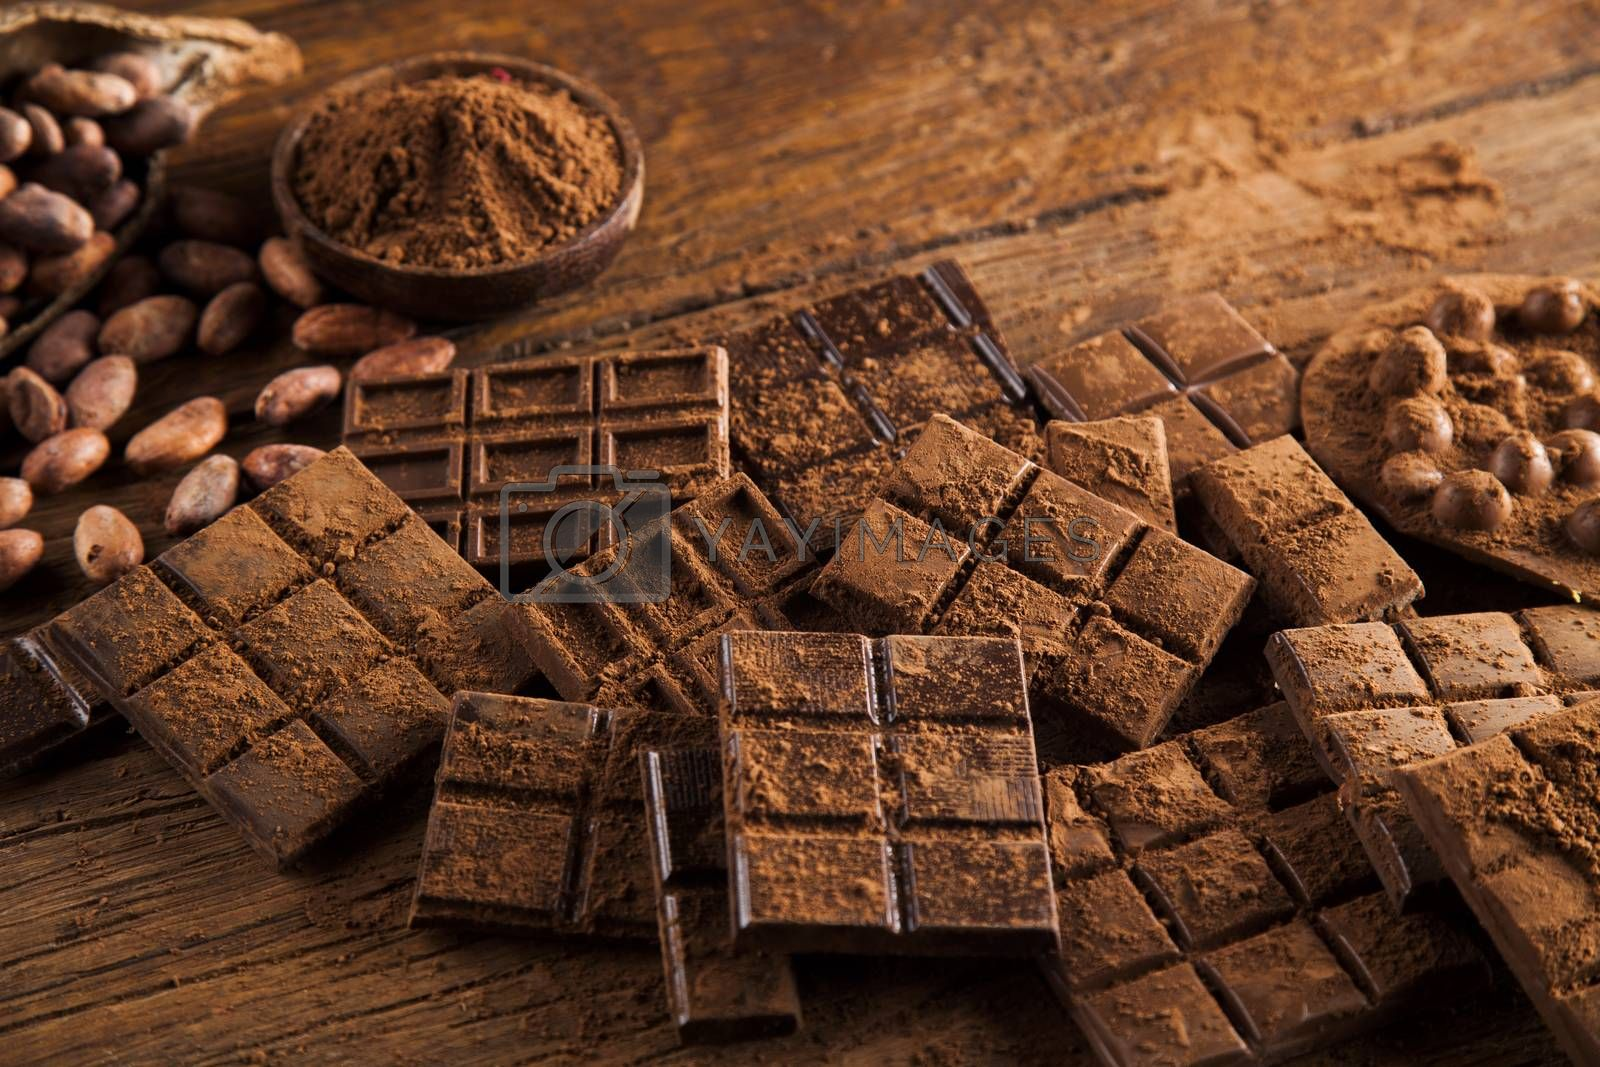 Royalty free image of Chocolate bar, candy sweet, dessert food on wooden background by JanPietruszka